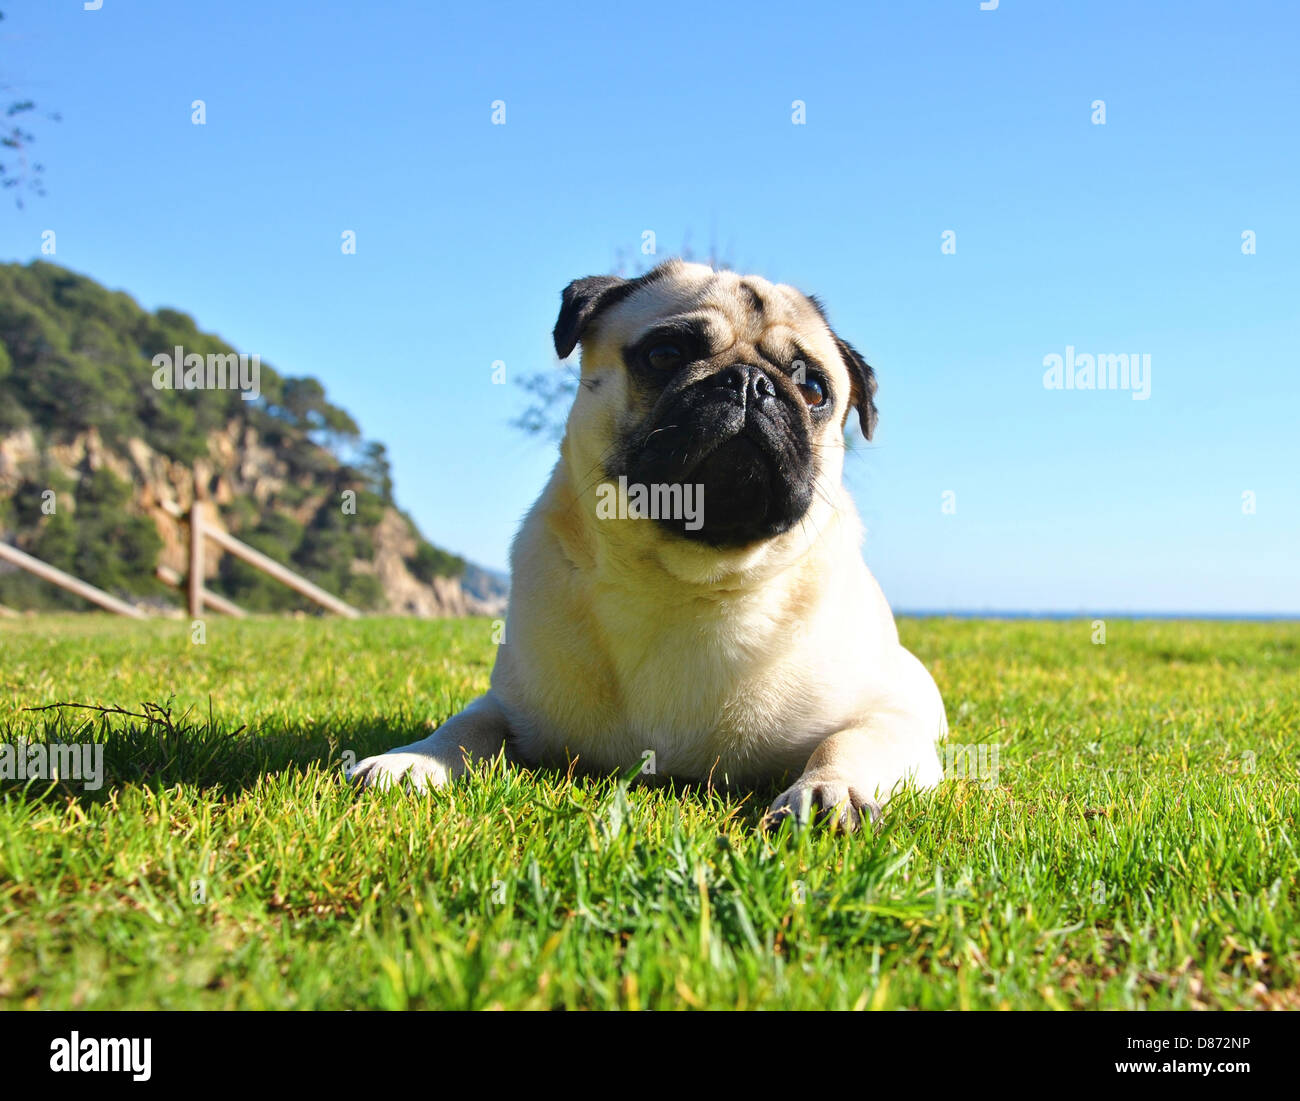 Pug in the garden - Stock Image